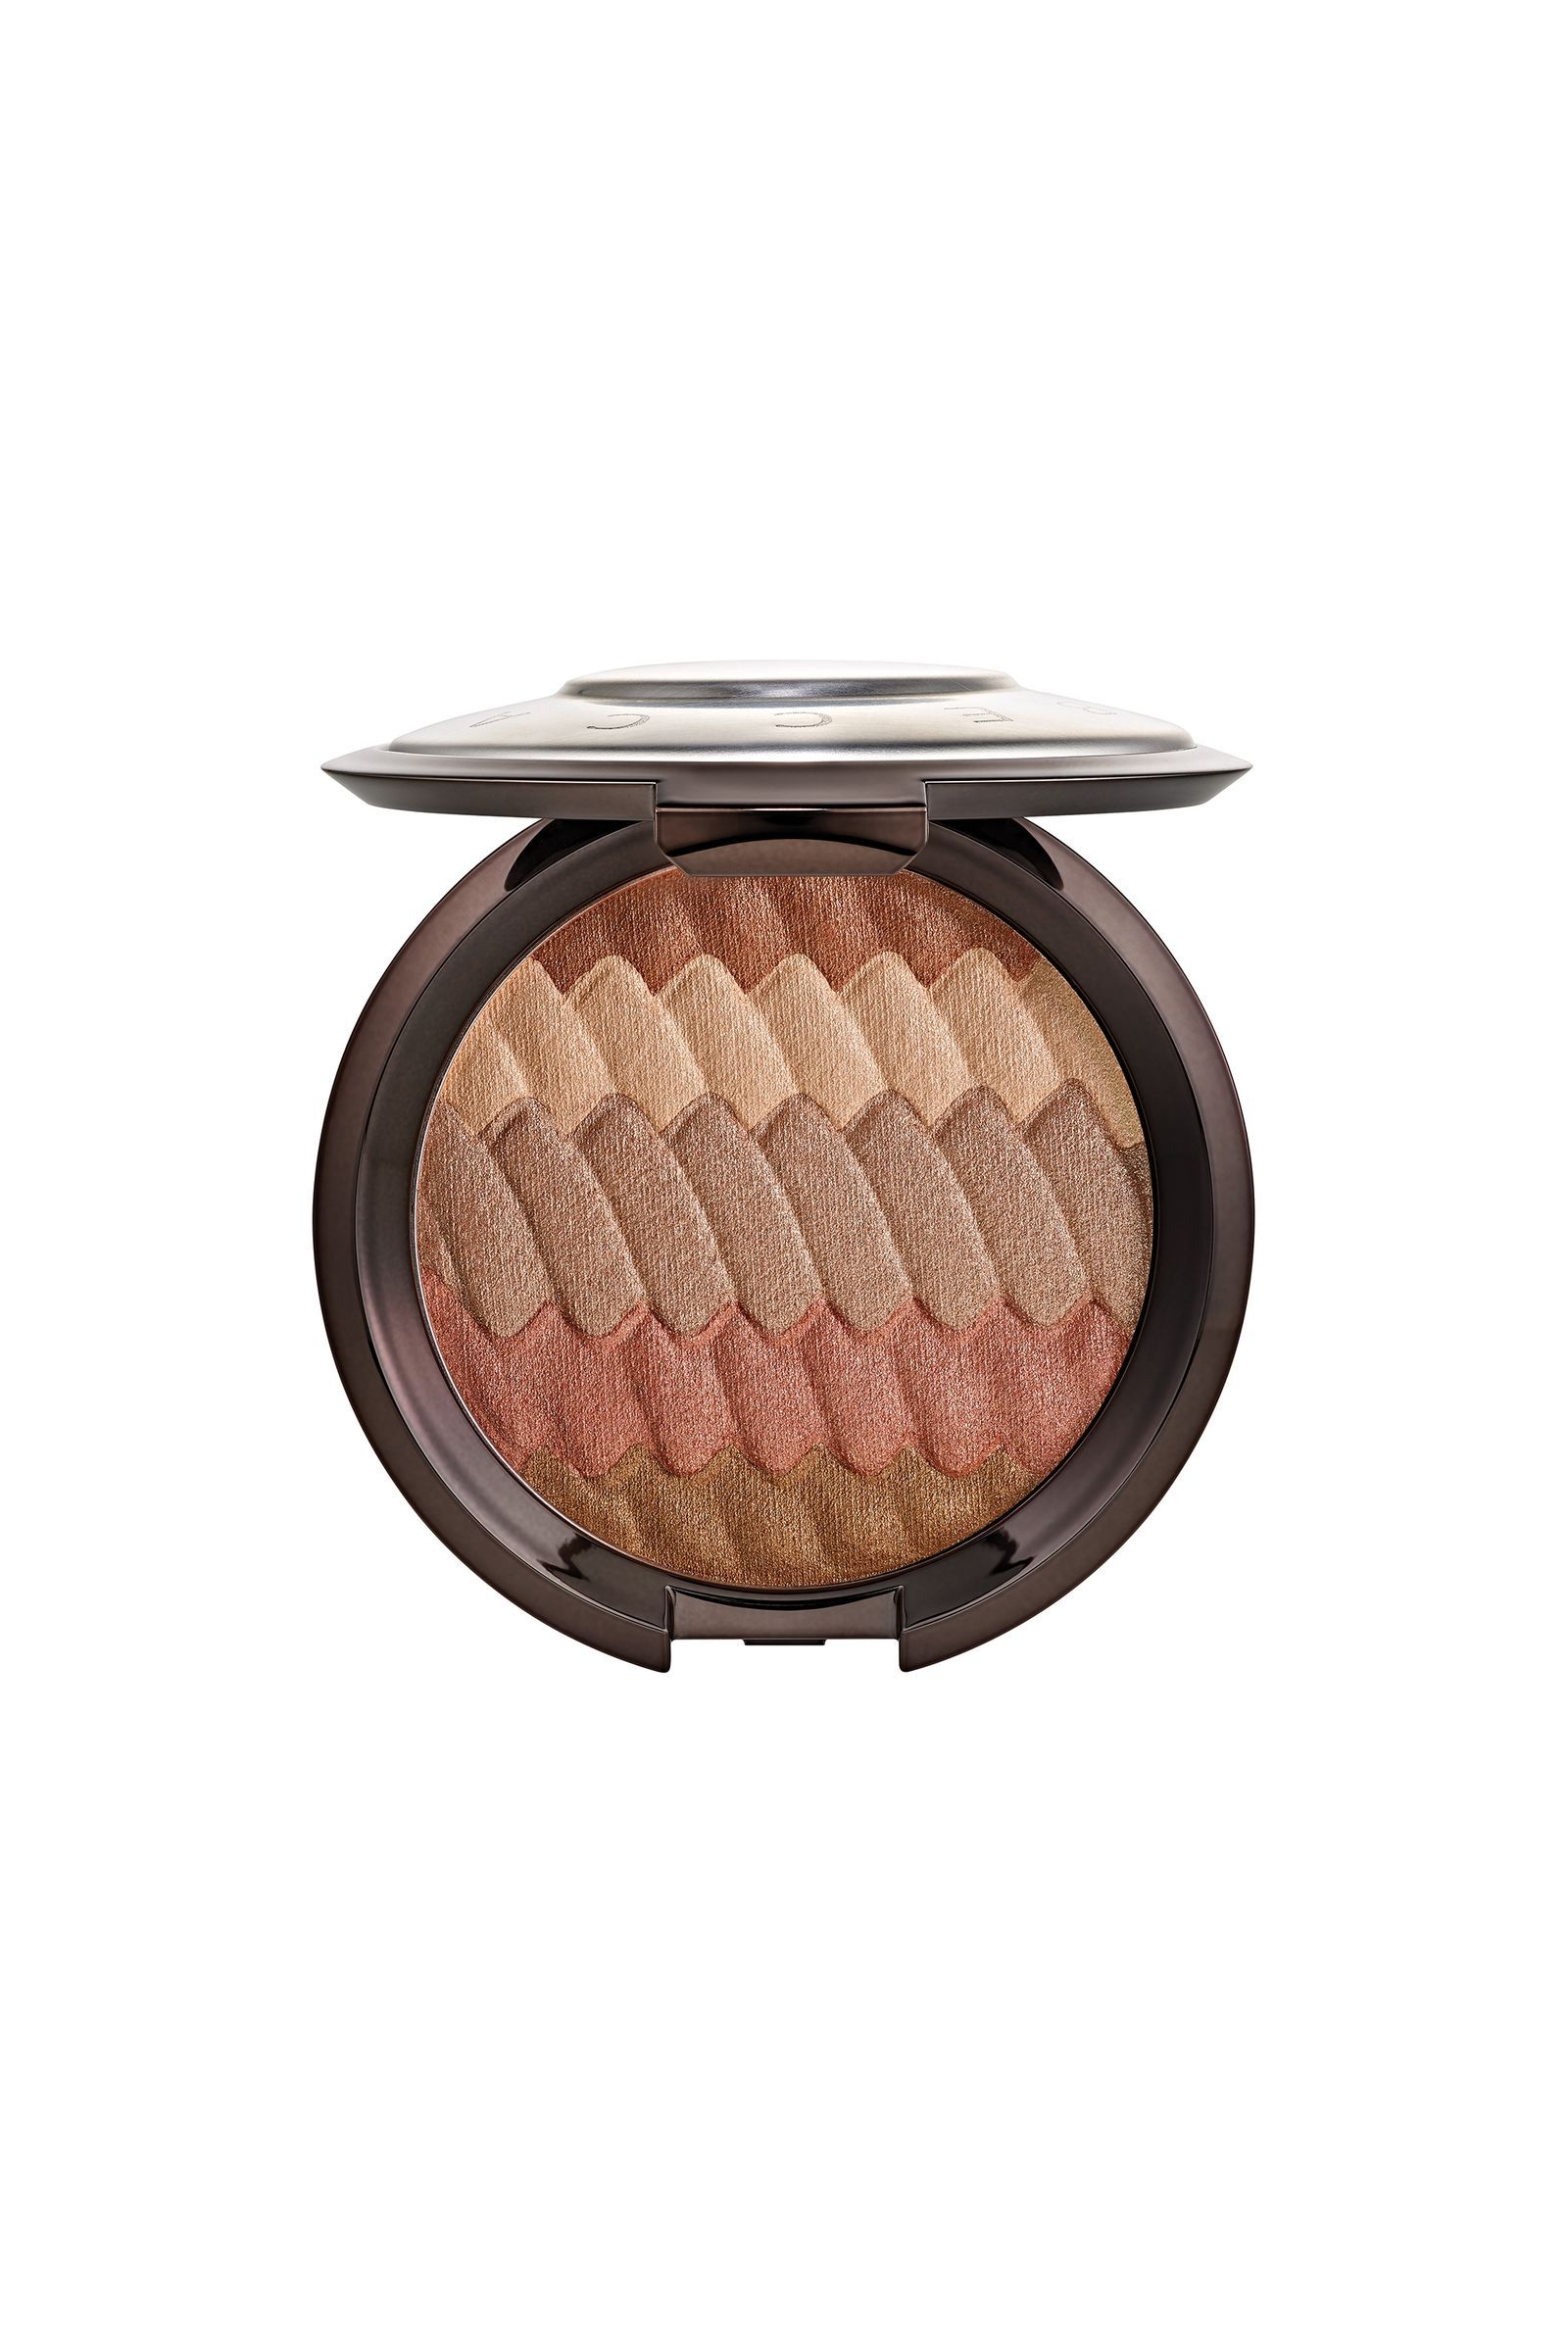 Discussion on this topic: The Very Best Highlighters For Gleamy, GorgeousSkin, the-very-best-highlighters-for-gleamy-gorgeousskin/